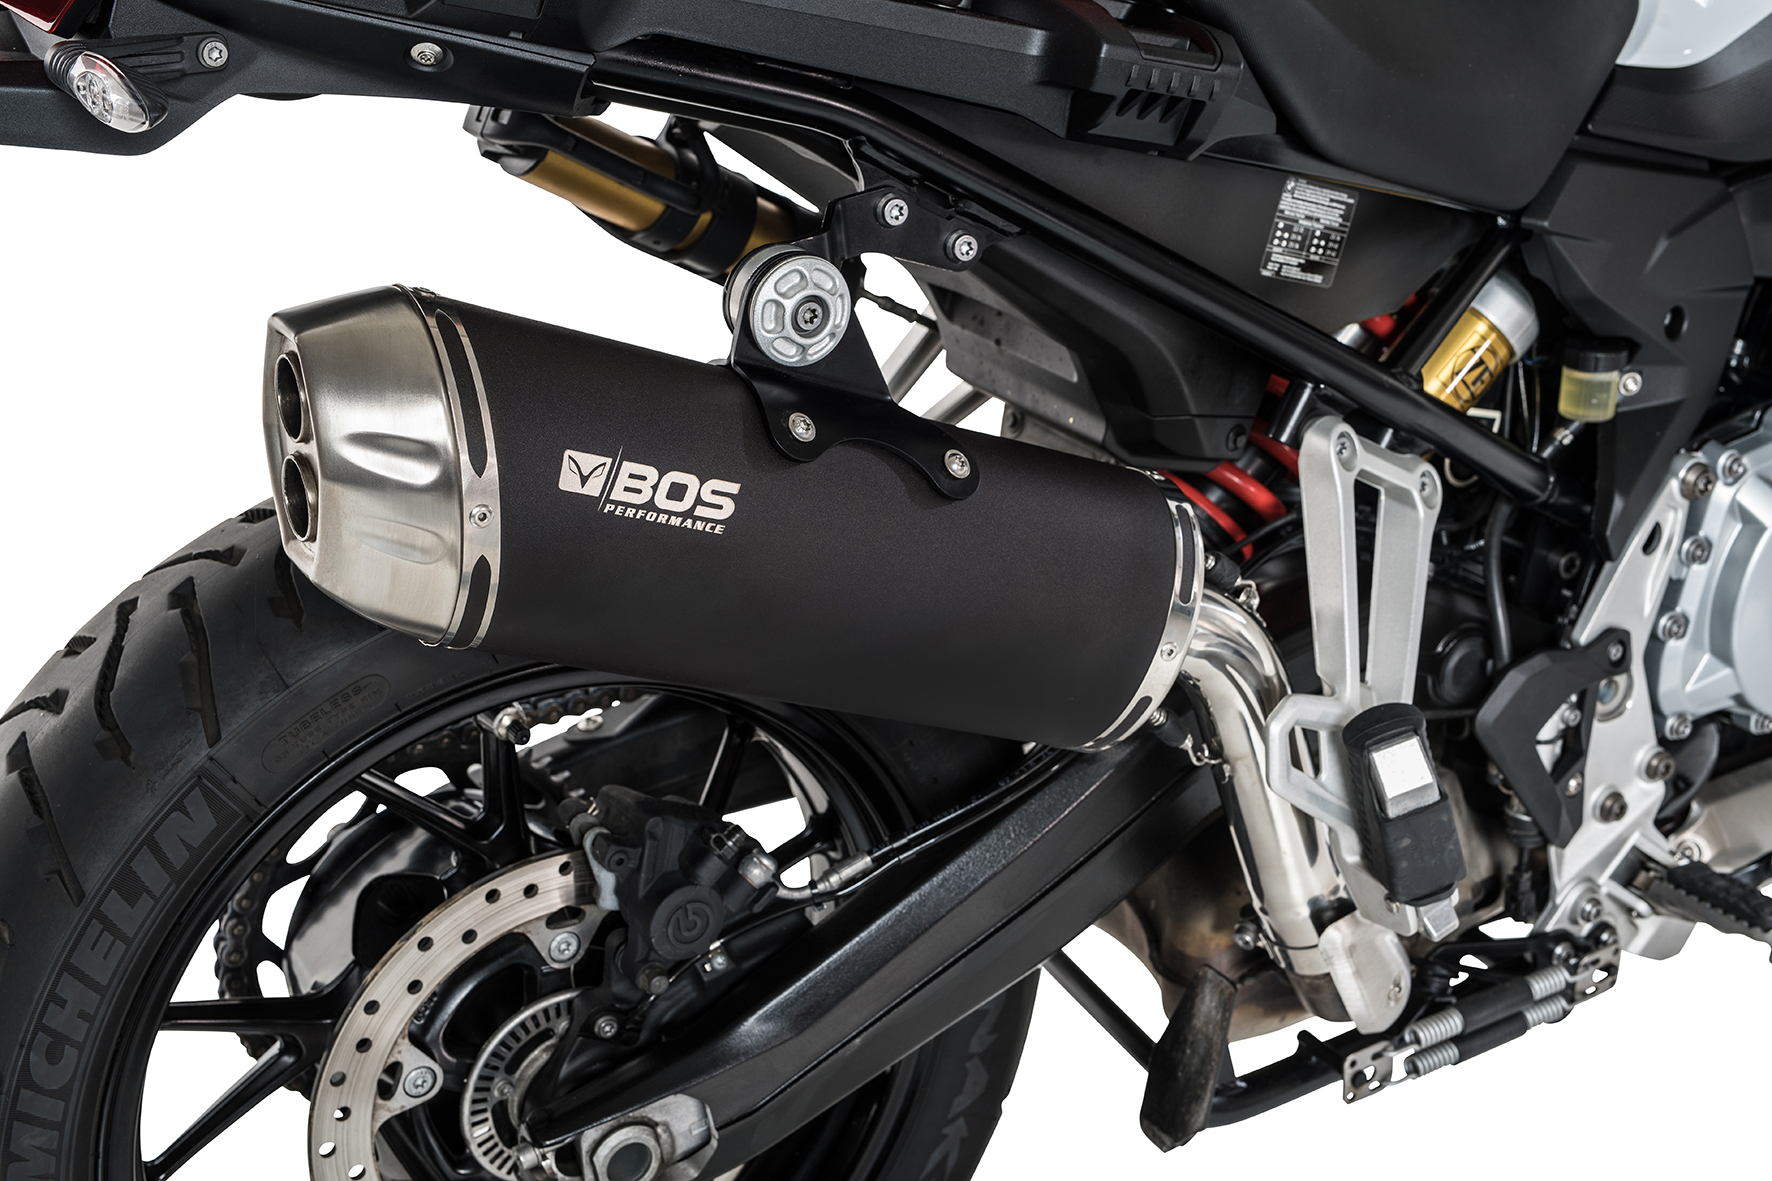 F 750 GS / F 850 GS Dune Fox Slip-on Euro 4 15